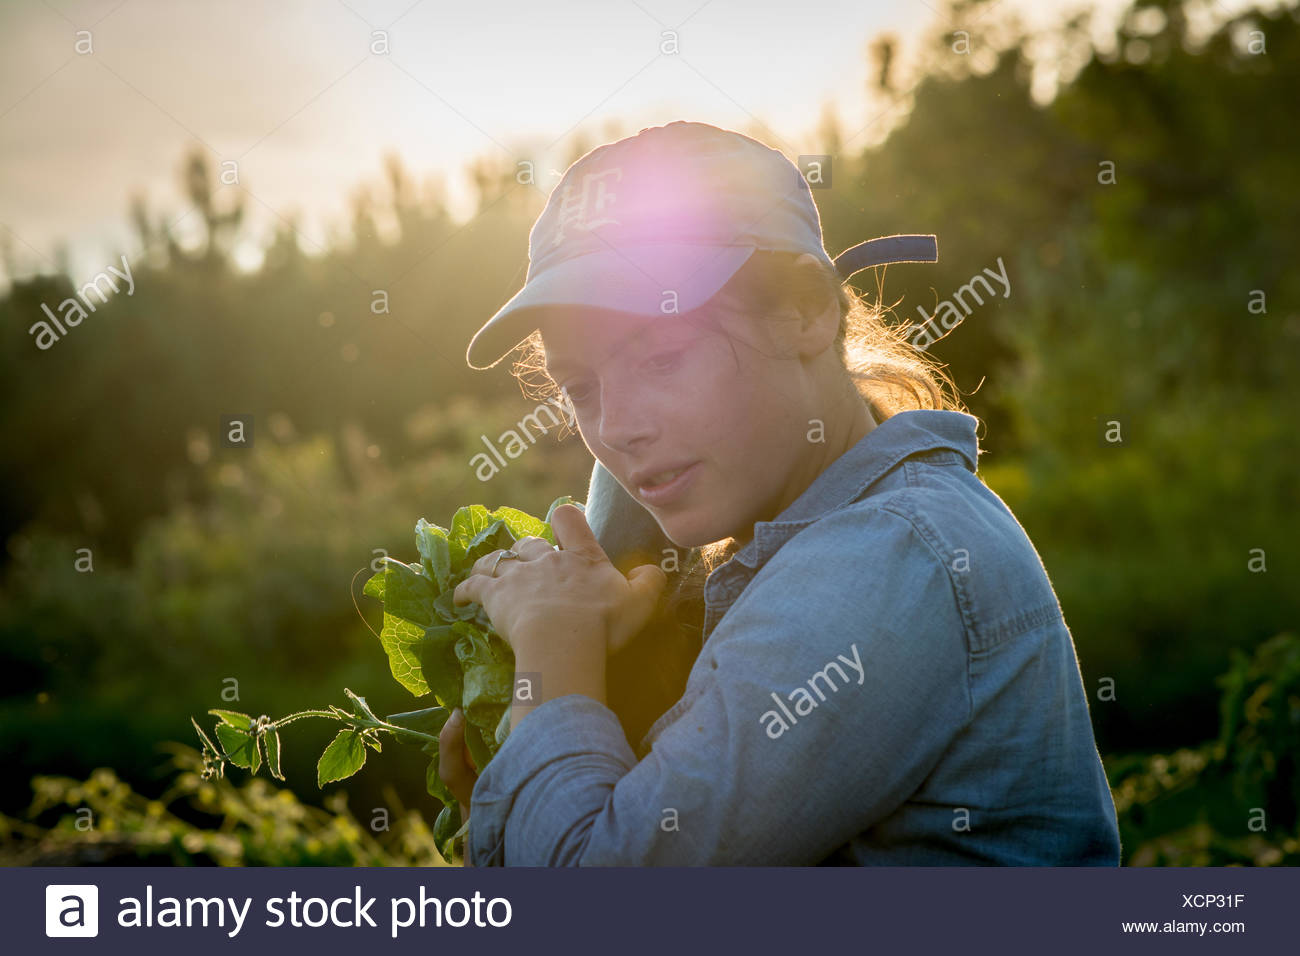 Woman harvesting vegetables in organic garden - Stock Image